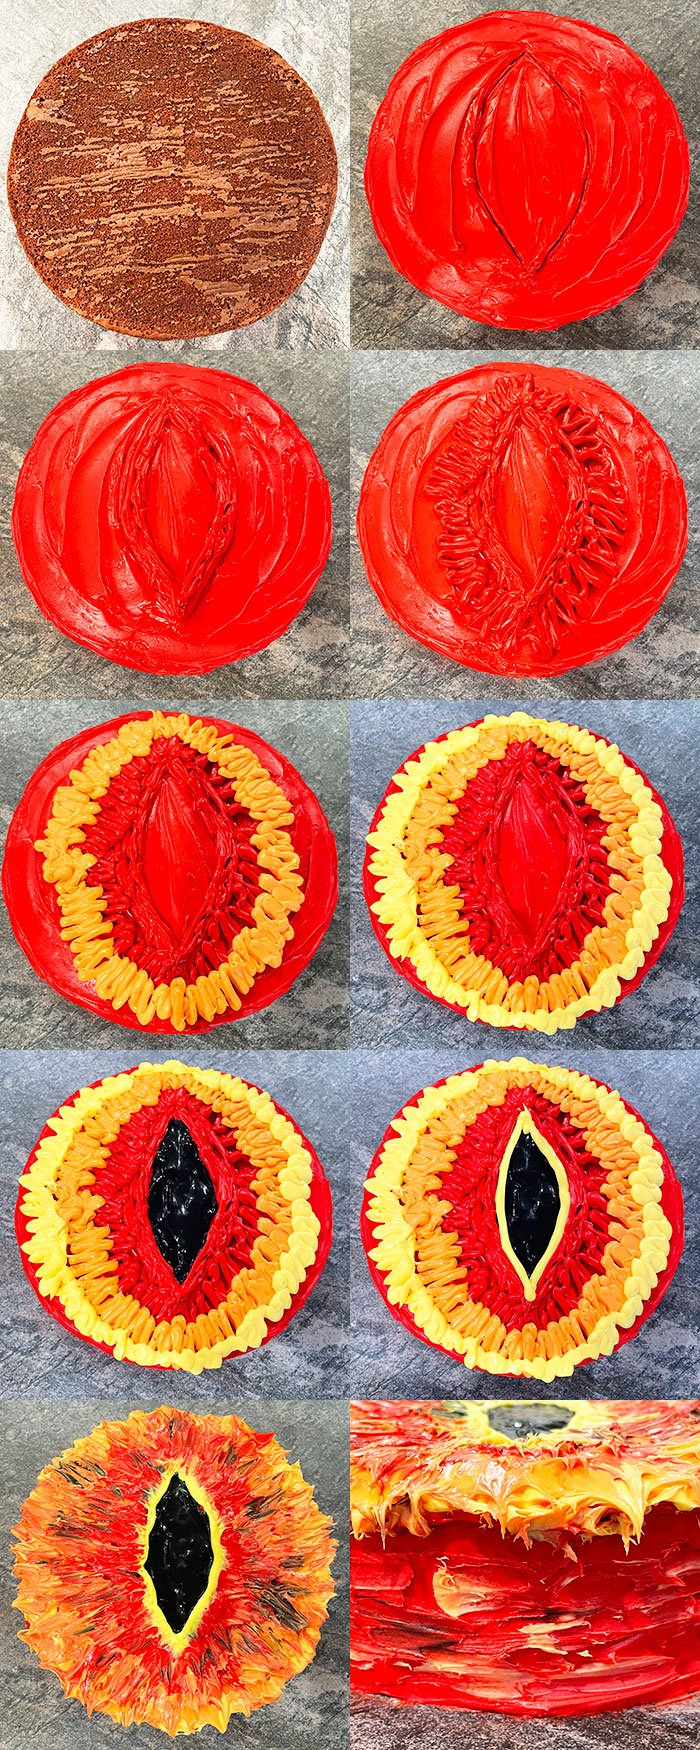 Collage Image With Step by Step Process Shots on How to Make Lord of the Rings Cake (Sauron Eye Cake)